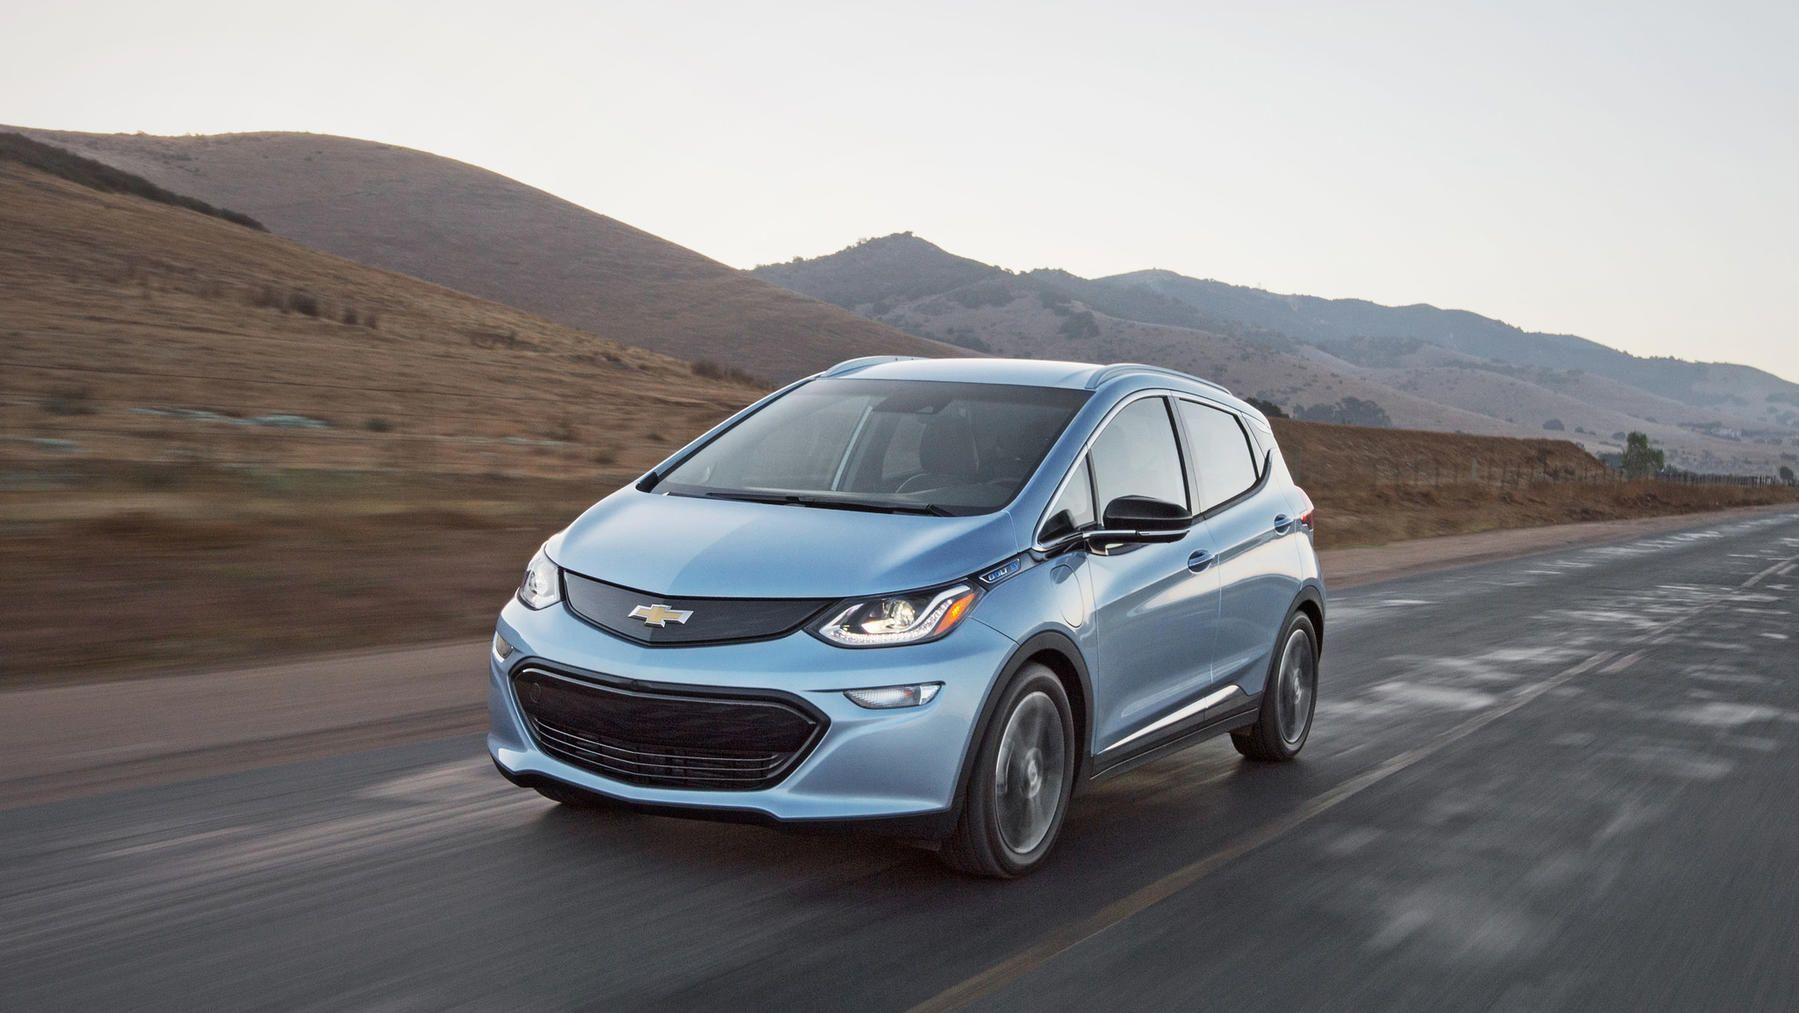 Chevy Bolt Ev Range Is 238 Miles Prime Time For The Electric Car